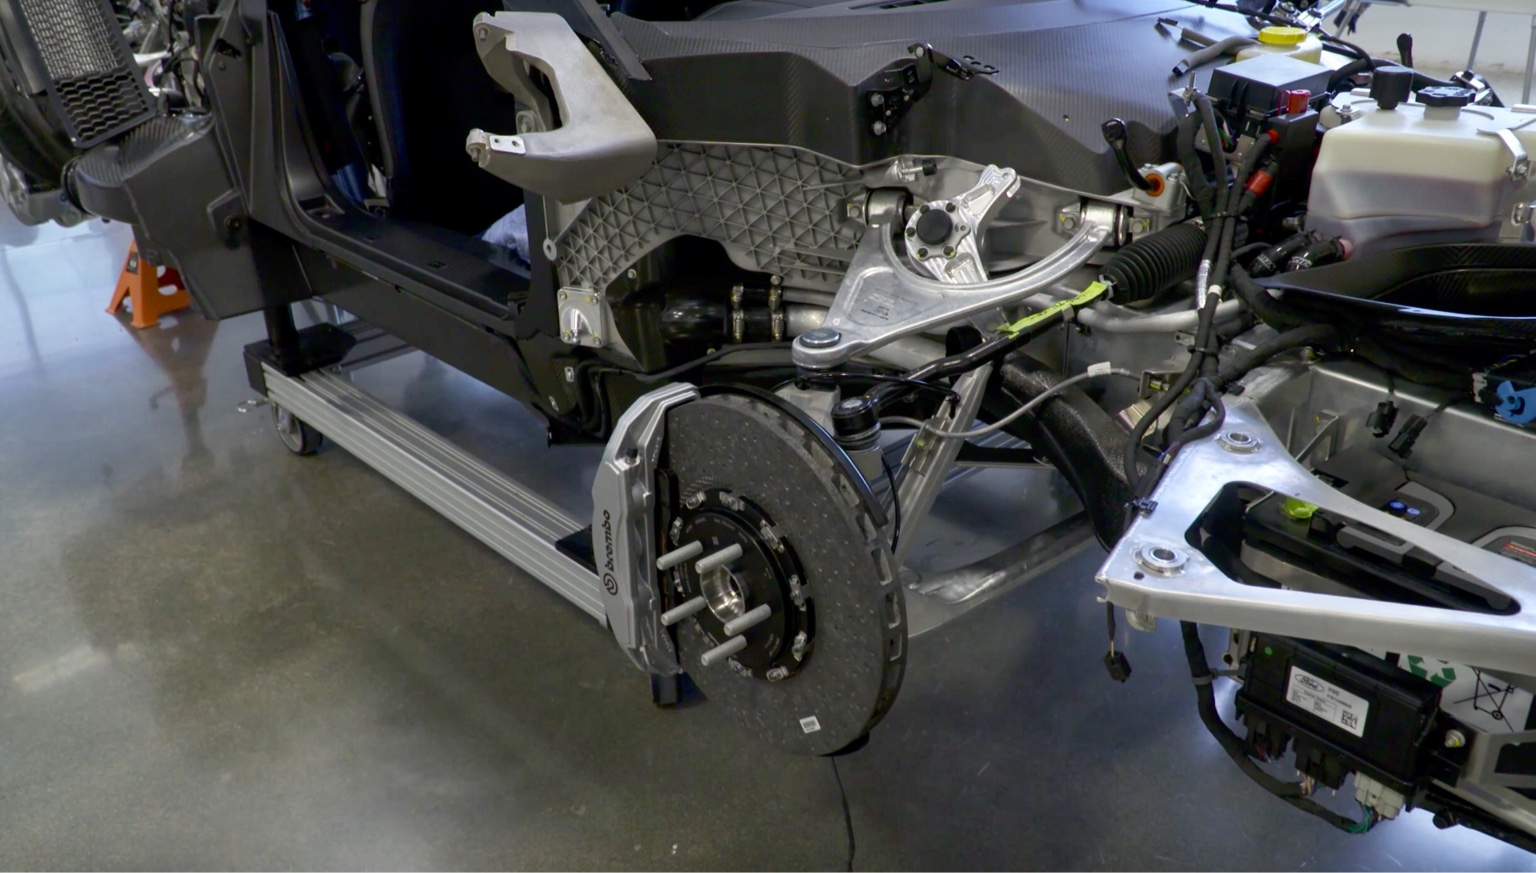 Complex Hydraulic Suspension Raises And Lowers The Car Mm In About A Second F Lmp Style Chassis Keel Construction Lots Of Structural Exposed Carbon In